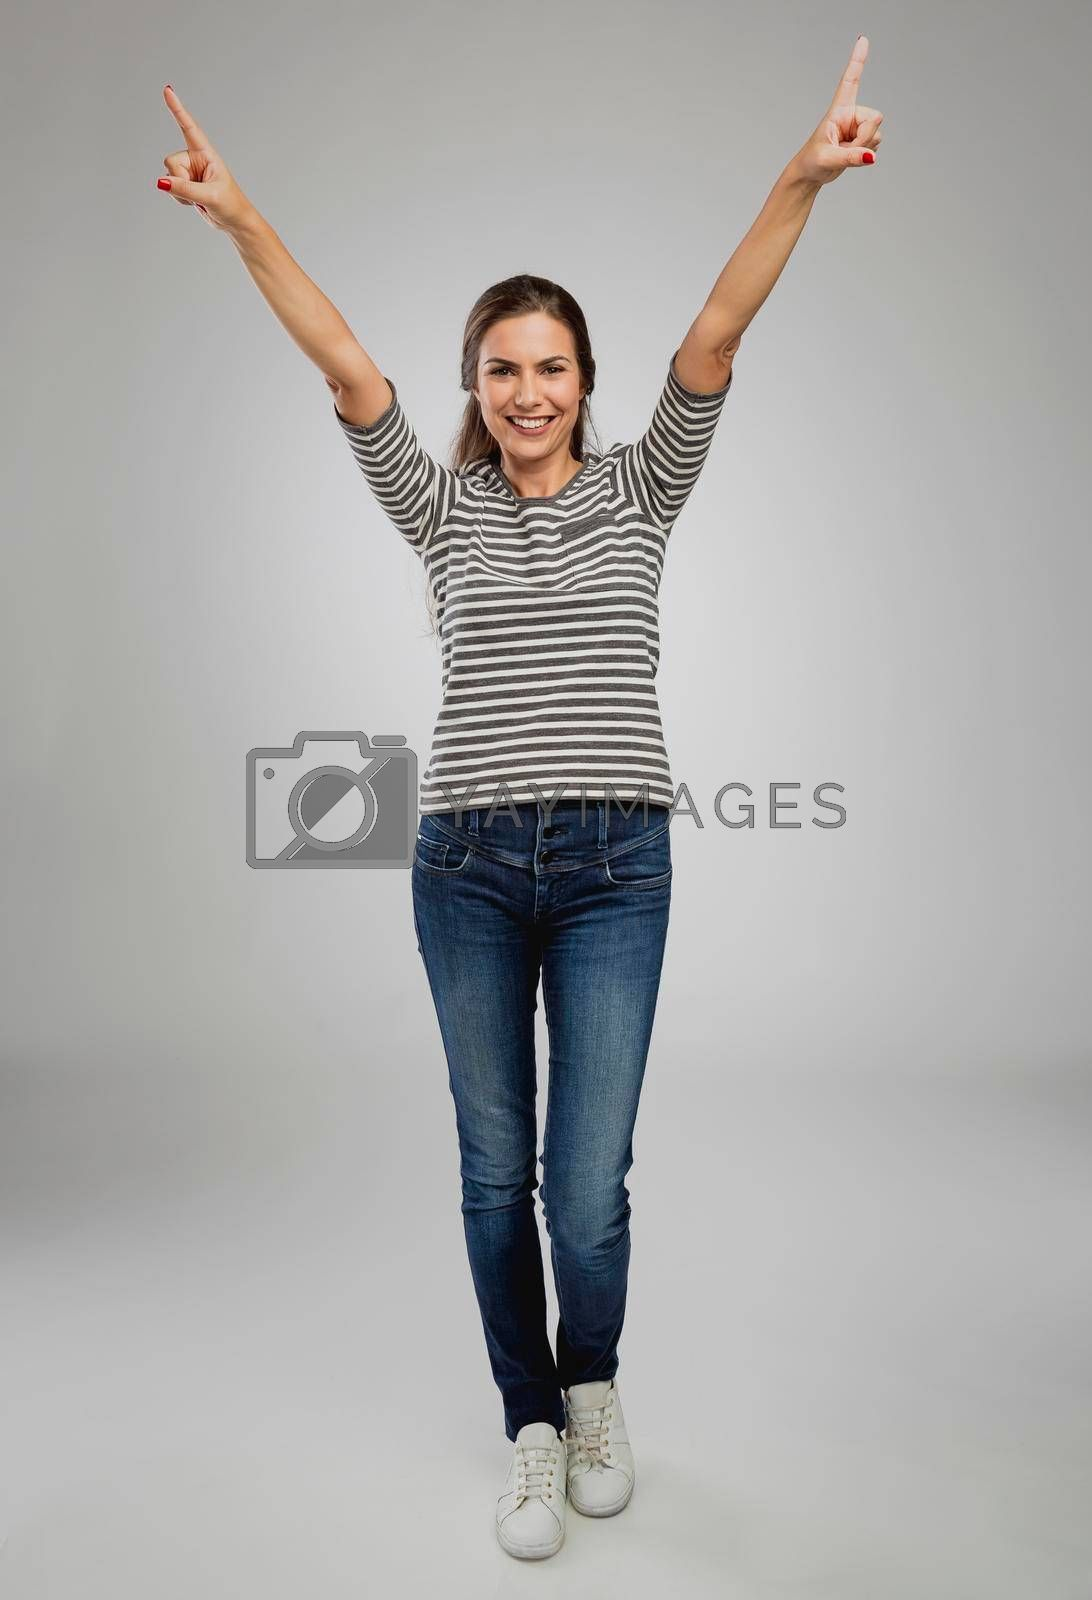 Royalty free image of Happy woman by Iko